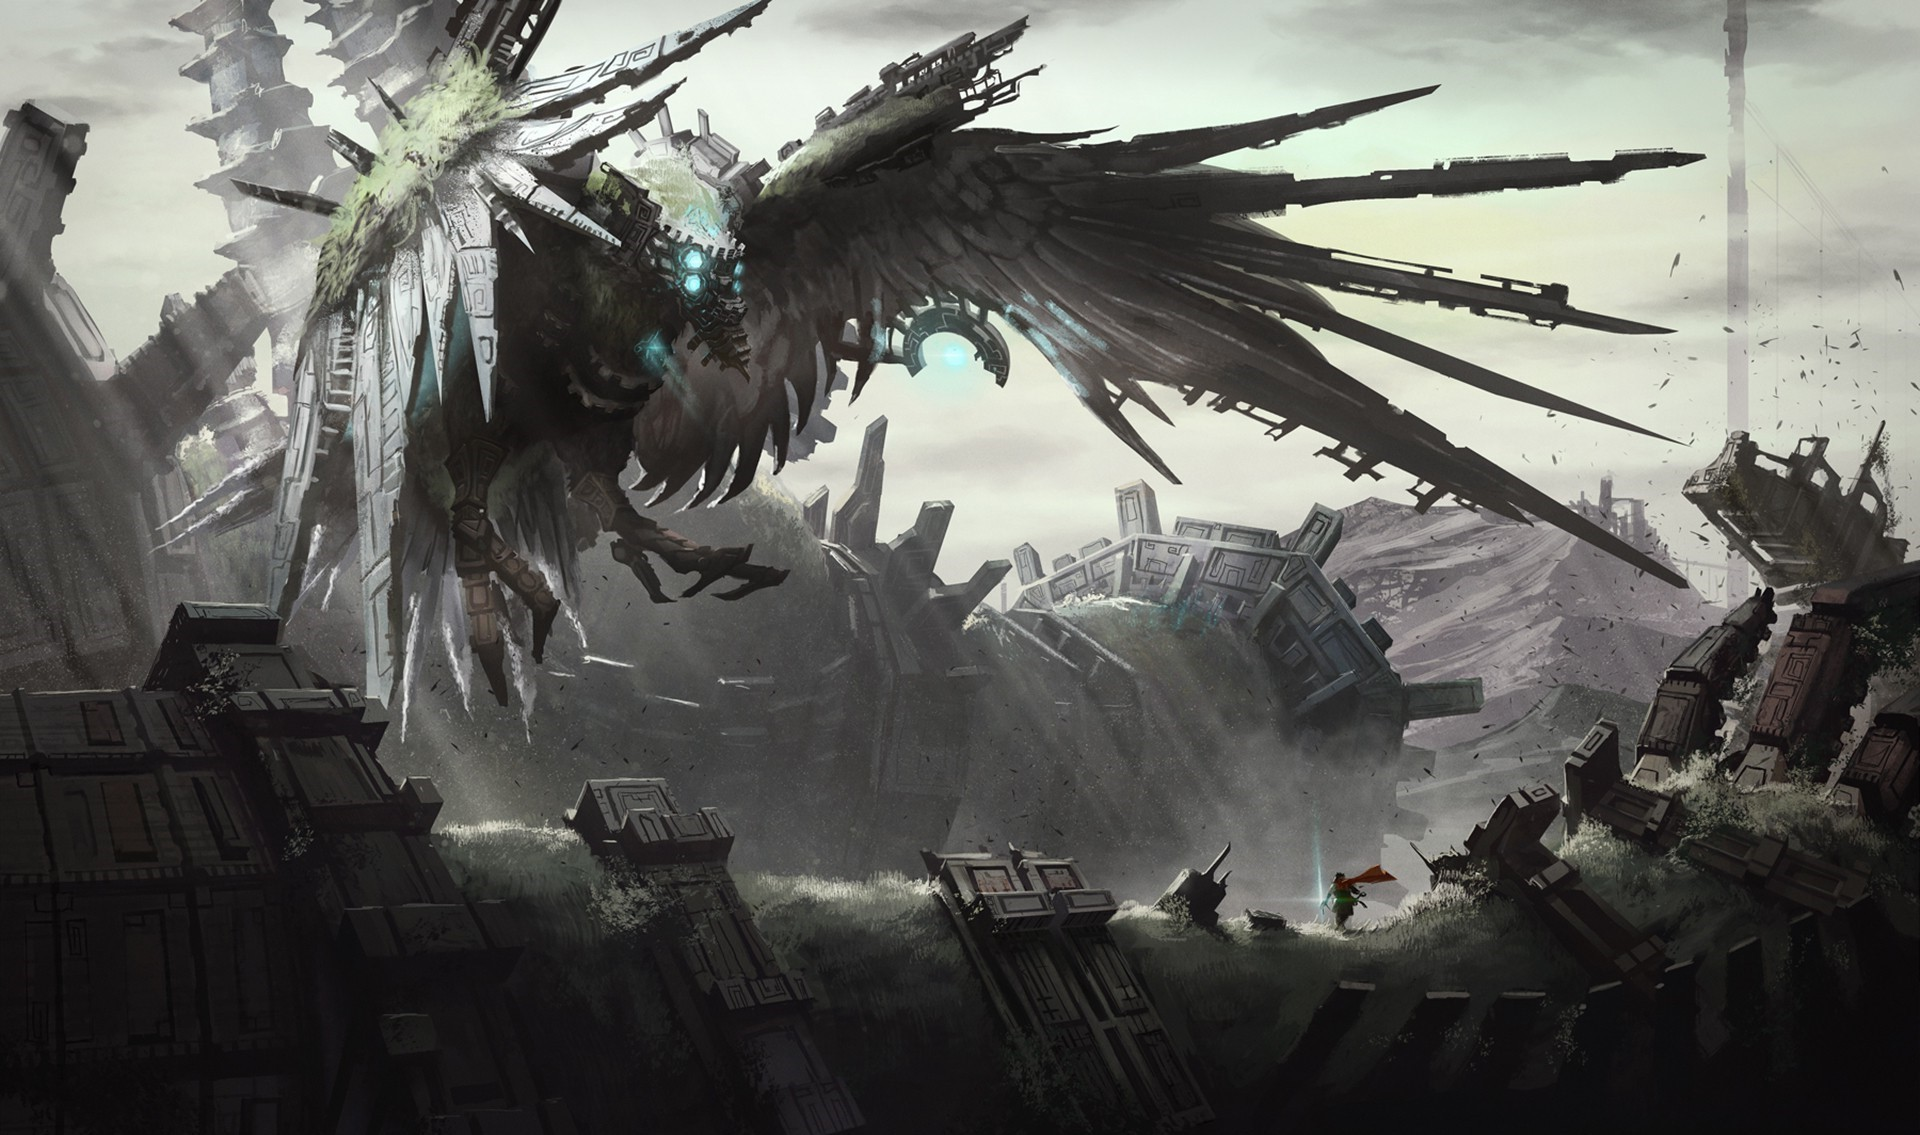 Shadow of the colossus wallpapers wallpapertag - Fantasy game wallpaper ...